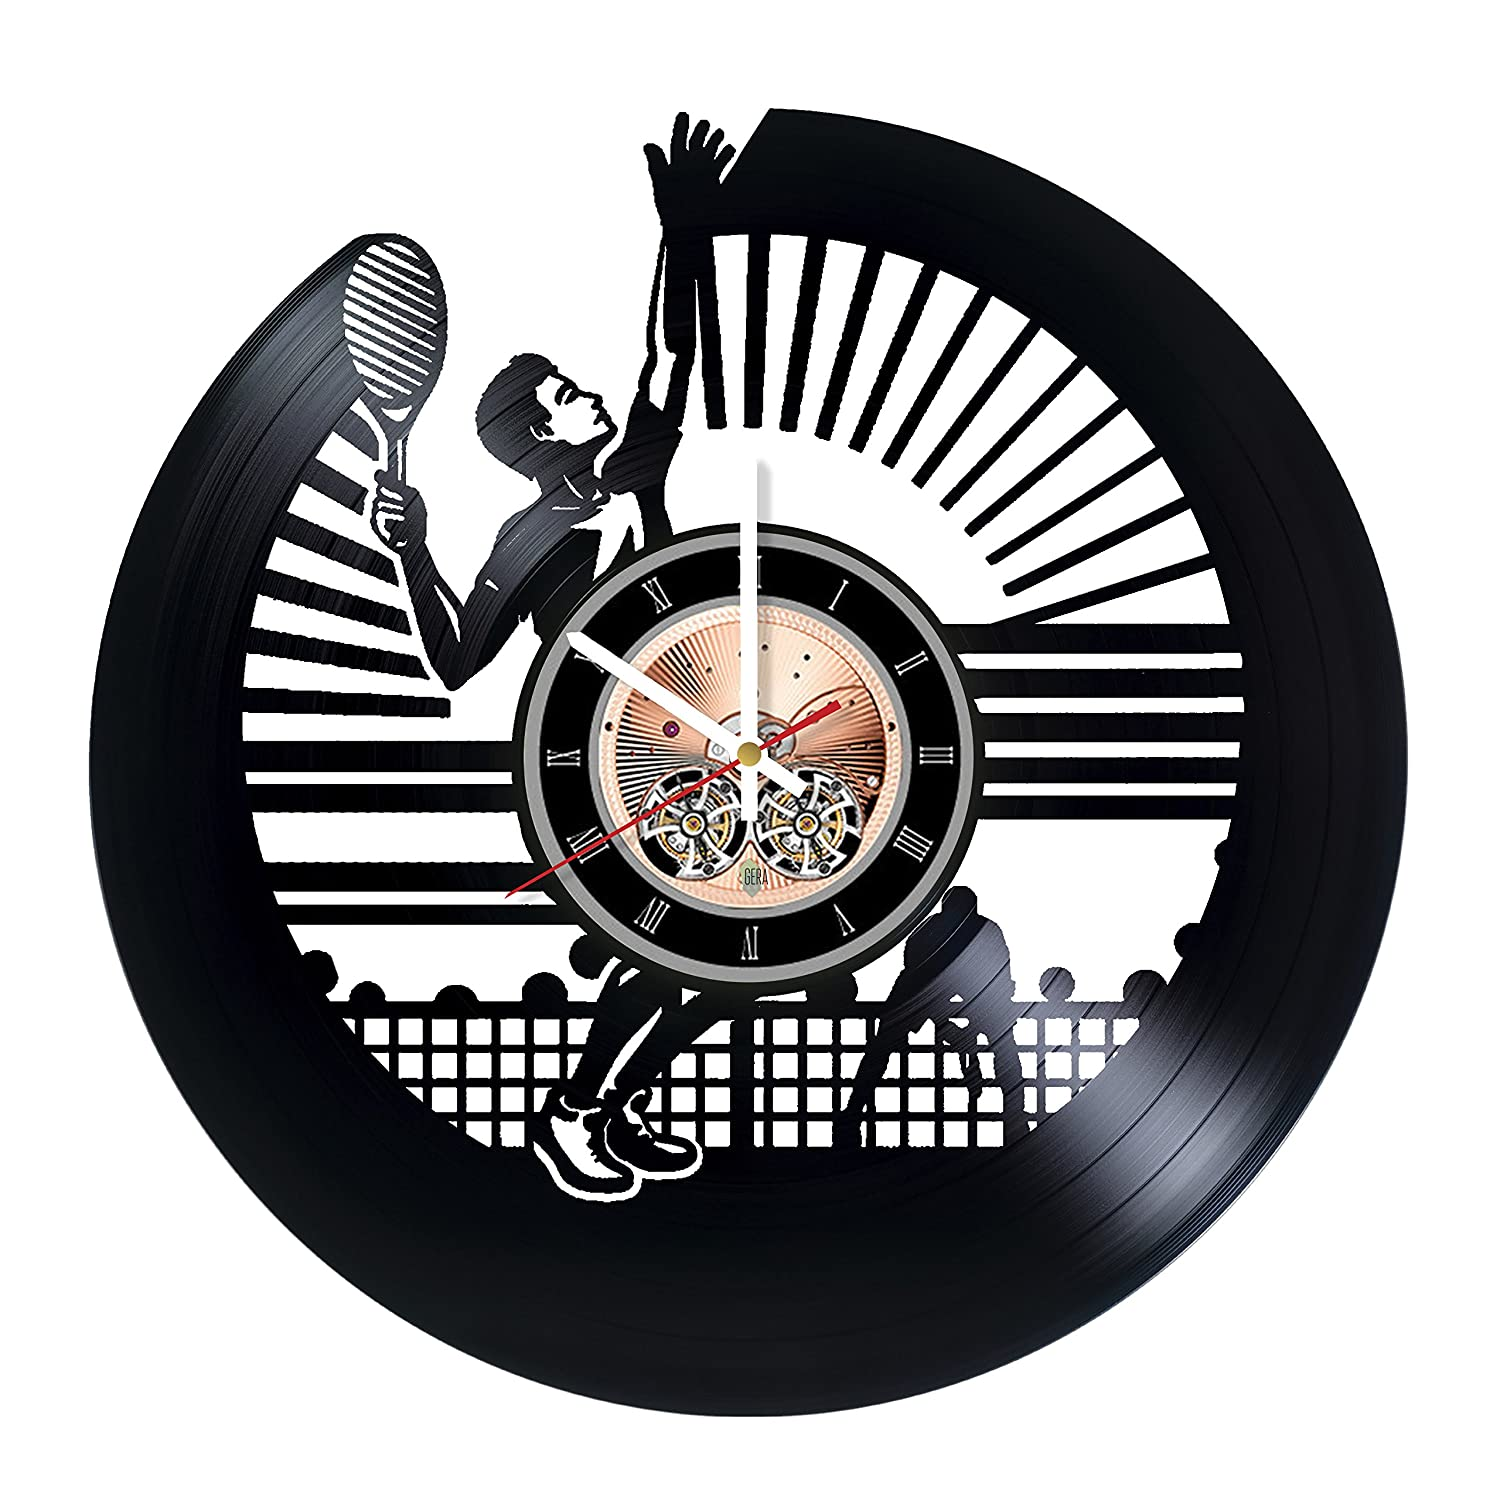 boys and girls Sport Unique Art Design choma Tennis Vinyl Record Wall Clock Living Room or Garage wall decor Gift ideas for friends teens